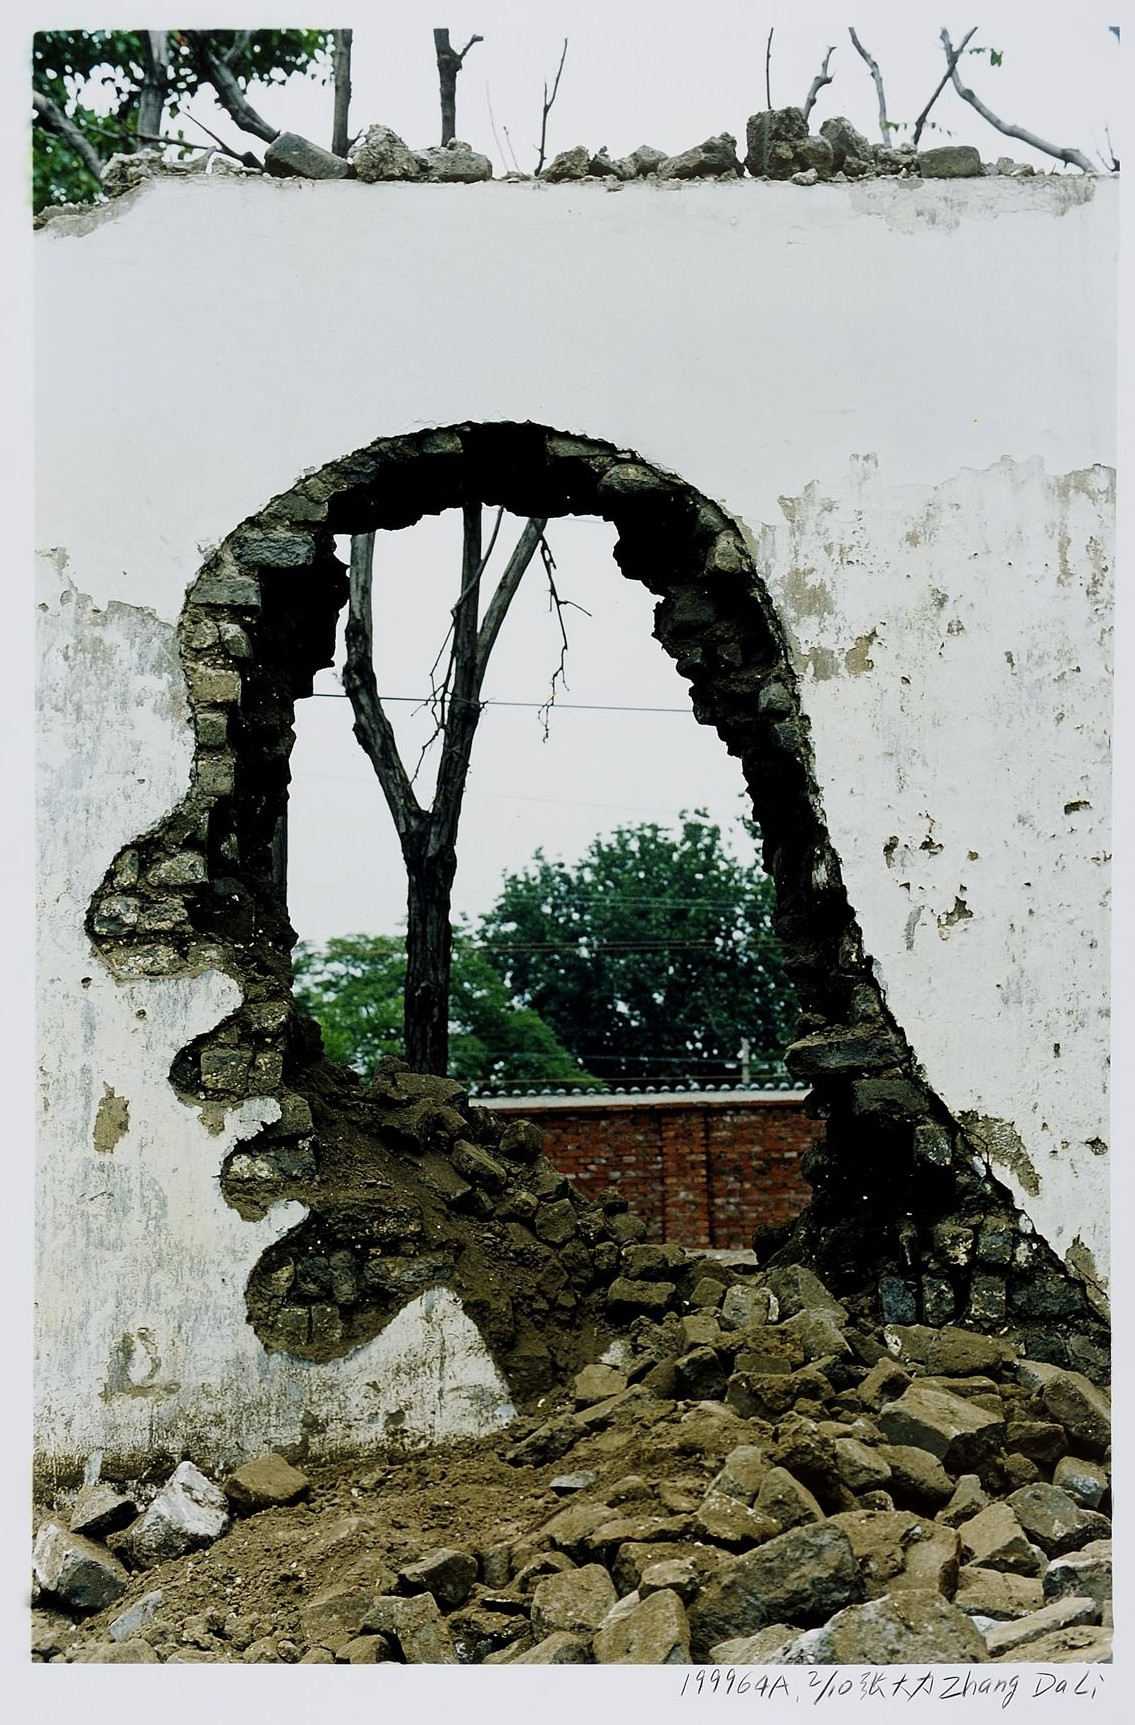 Demolition (Ping'an Avenue Beijing)